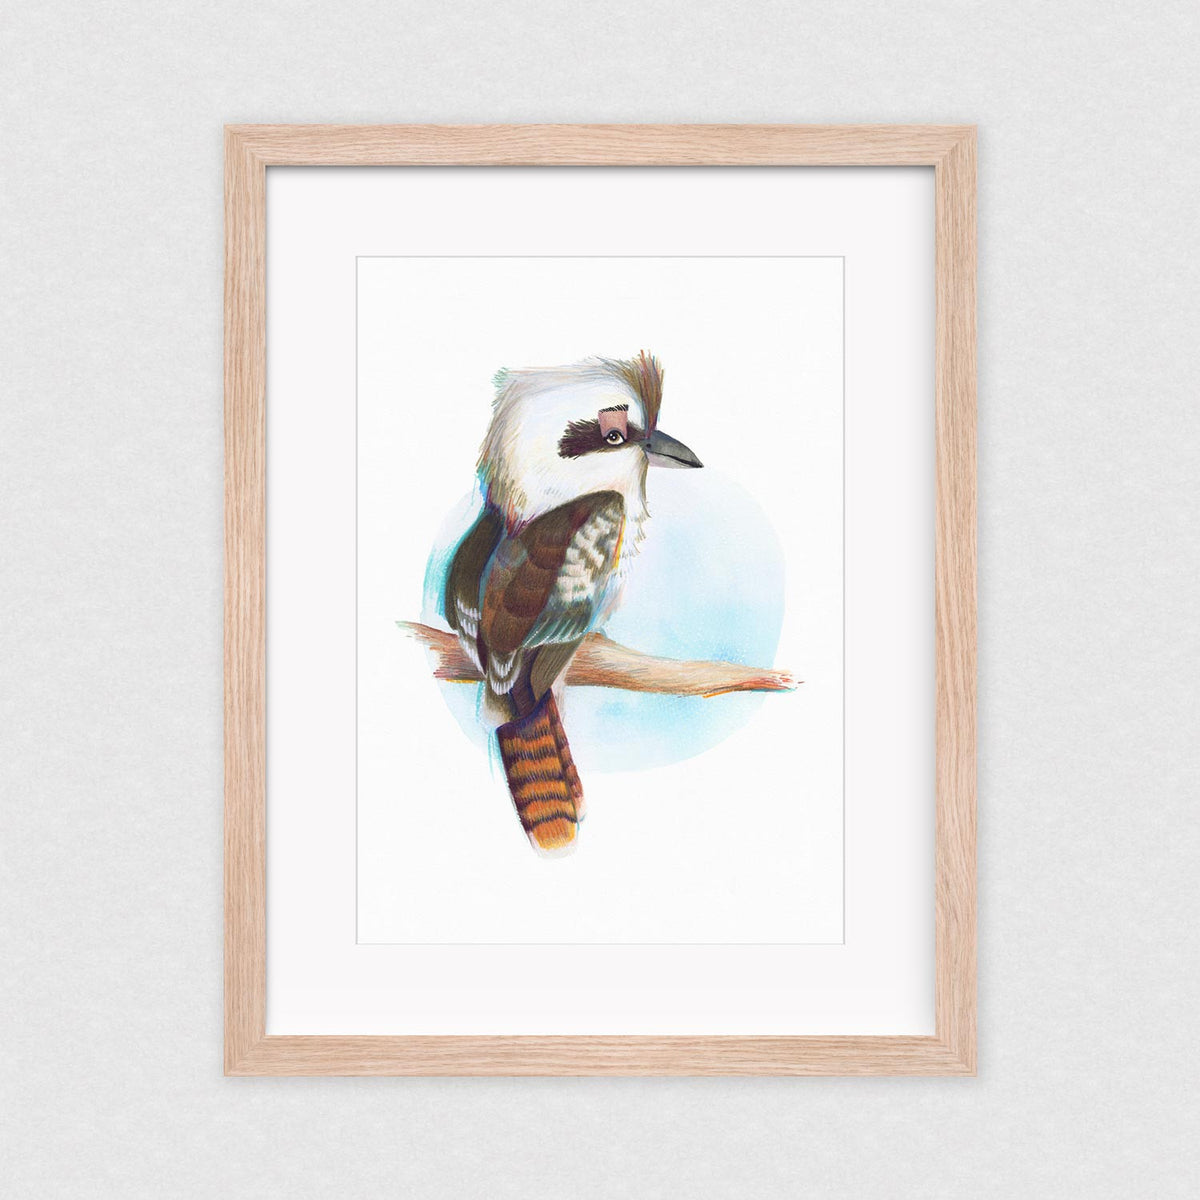 Who's Laughing now? - Framed Limited Edition Print | by Natalie Martin - Framed Prints - Throw Some Seeds - Australian gardening gifts and eco products online!